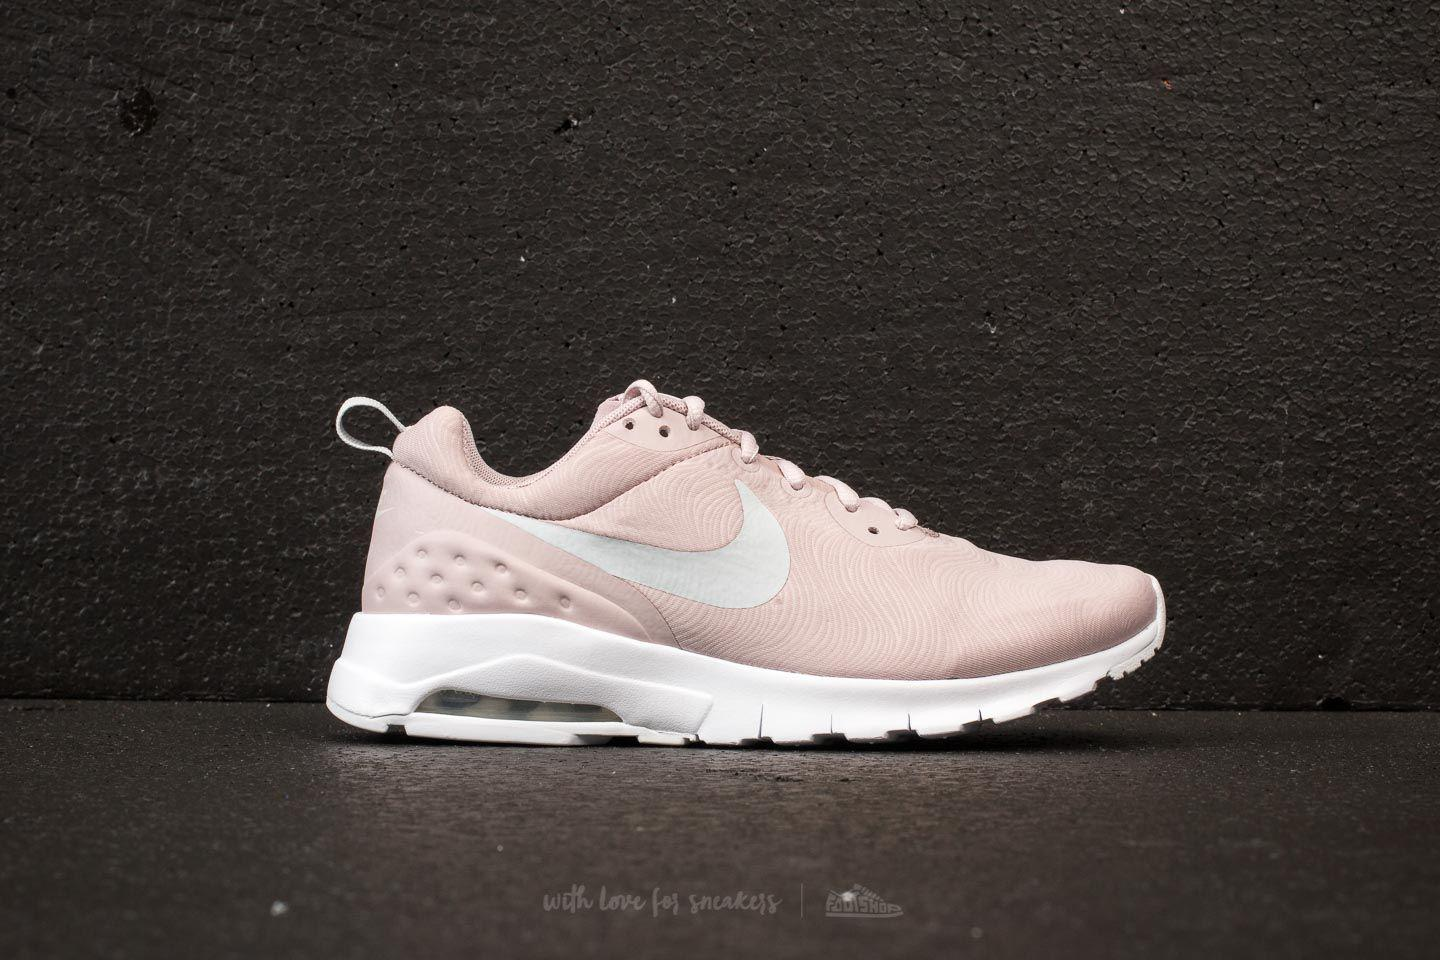 c69e27c0594e switzerland nike womenx27s air max motion lw pure platinum white training  shoe 6c1a0 c7cad  promo code gallery. previously sold at footshop womens nike  air ...